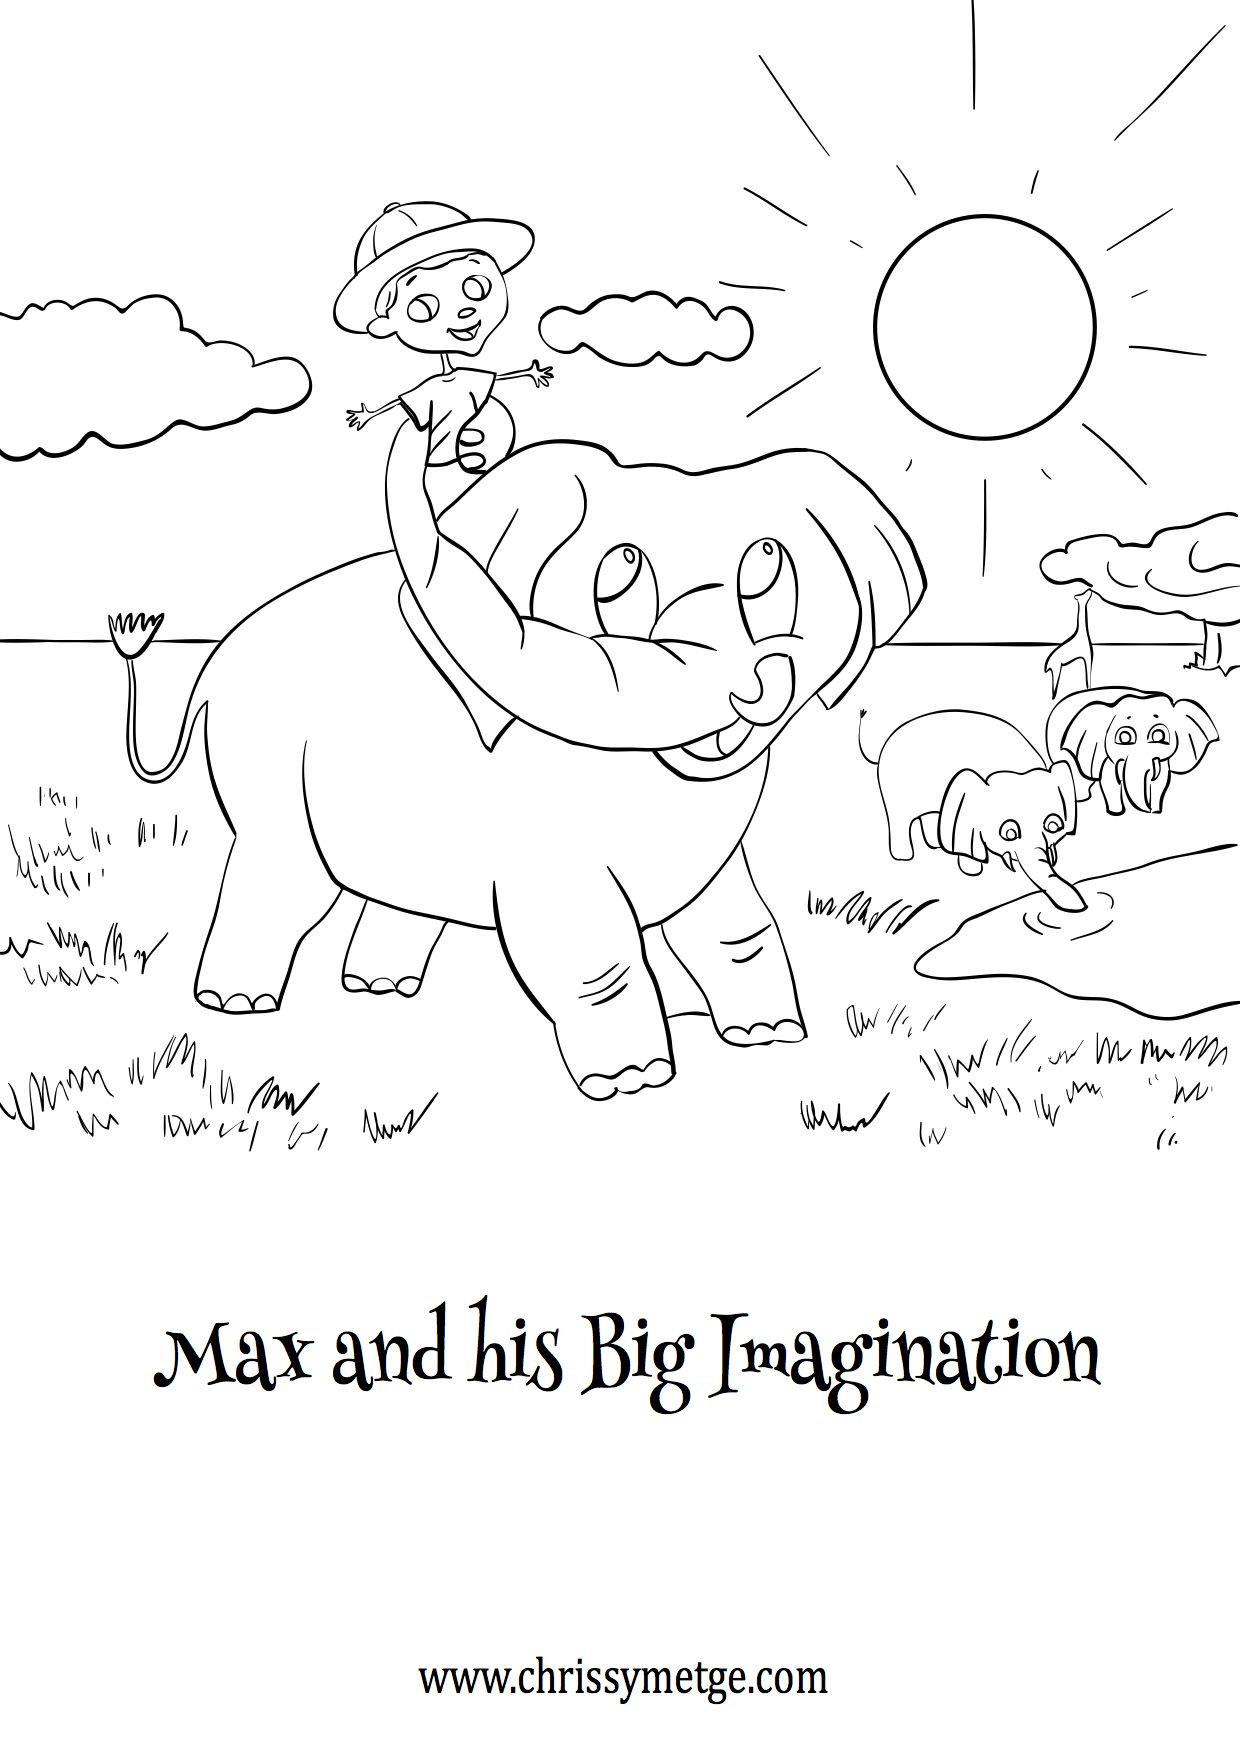 Max Is A Little Boy With A Big Imagination Today Max Has